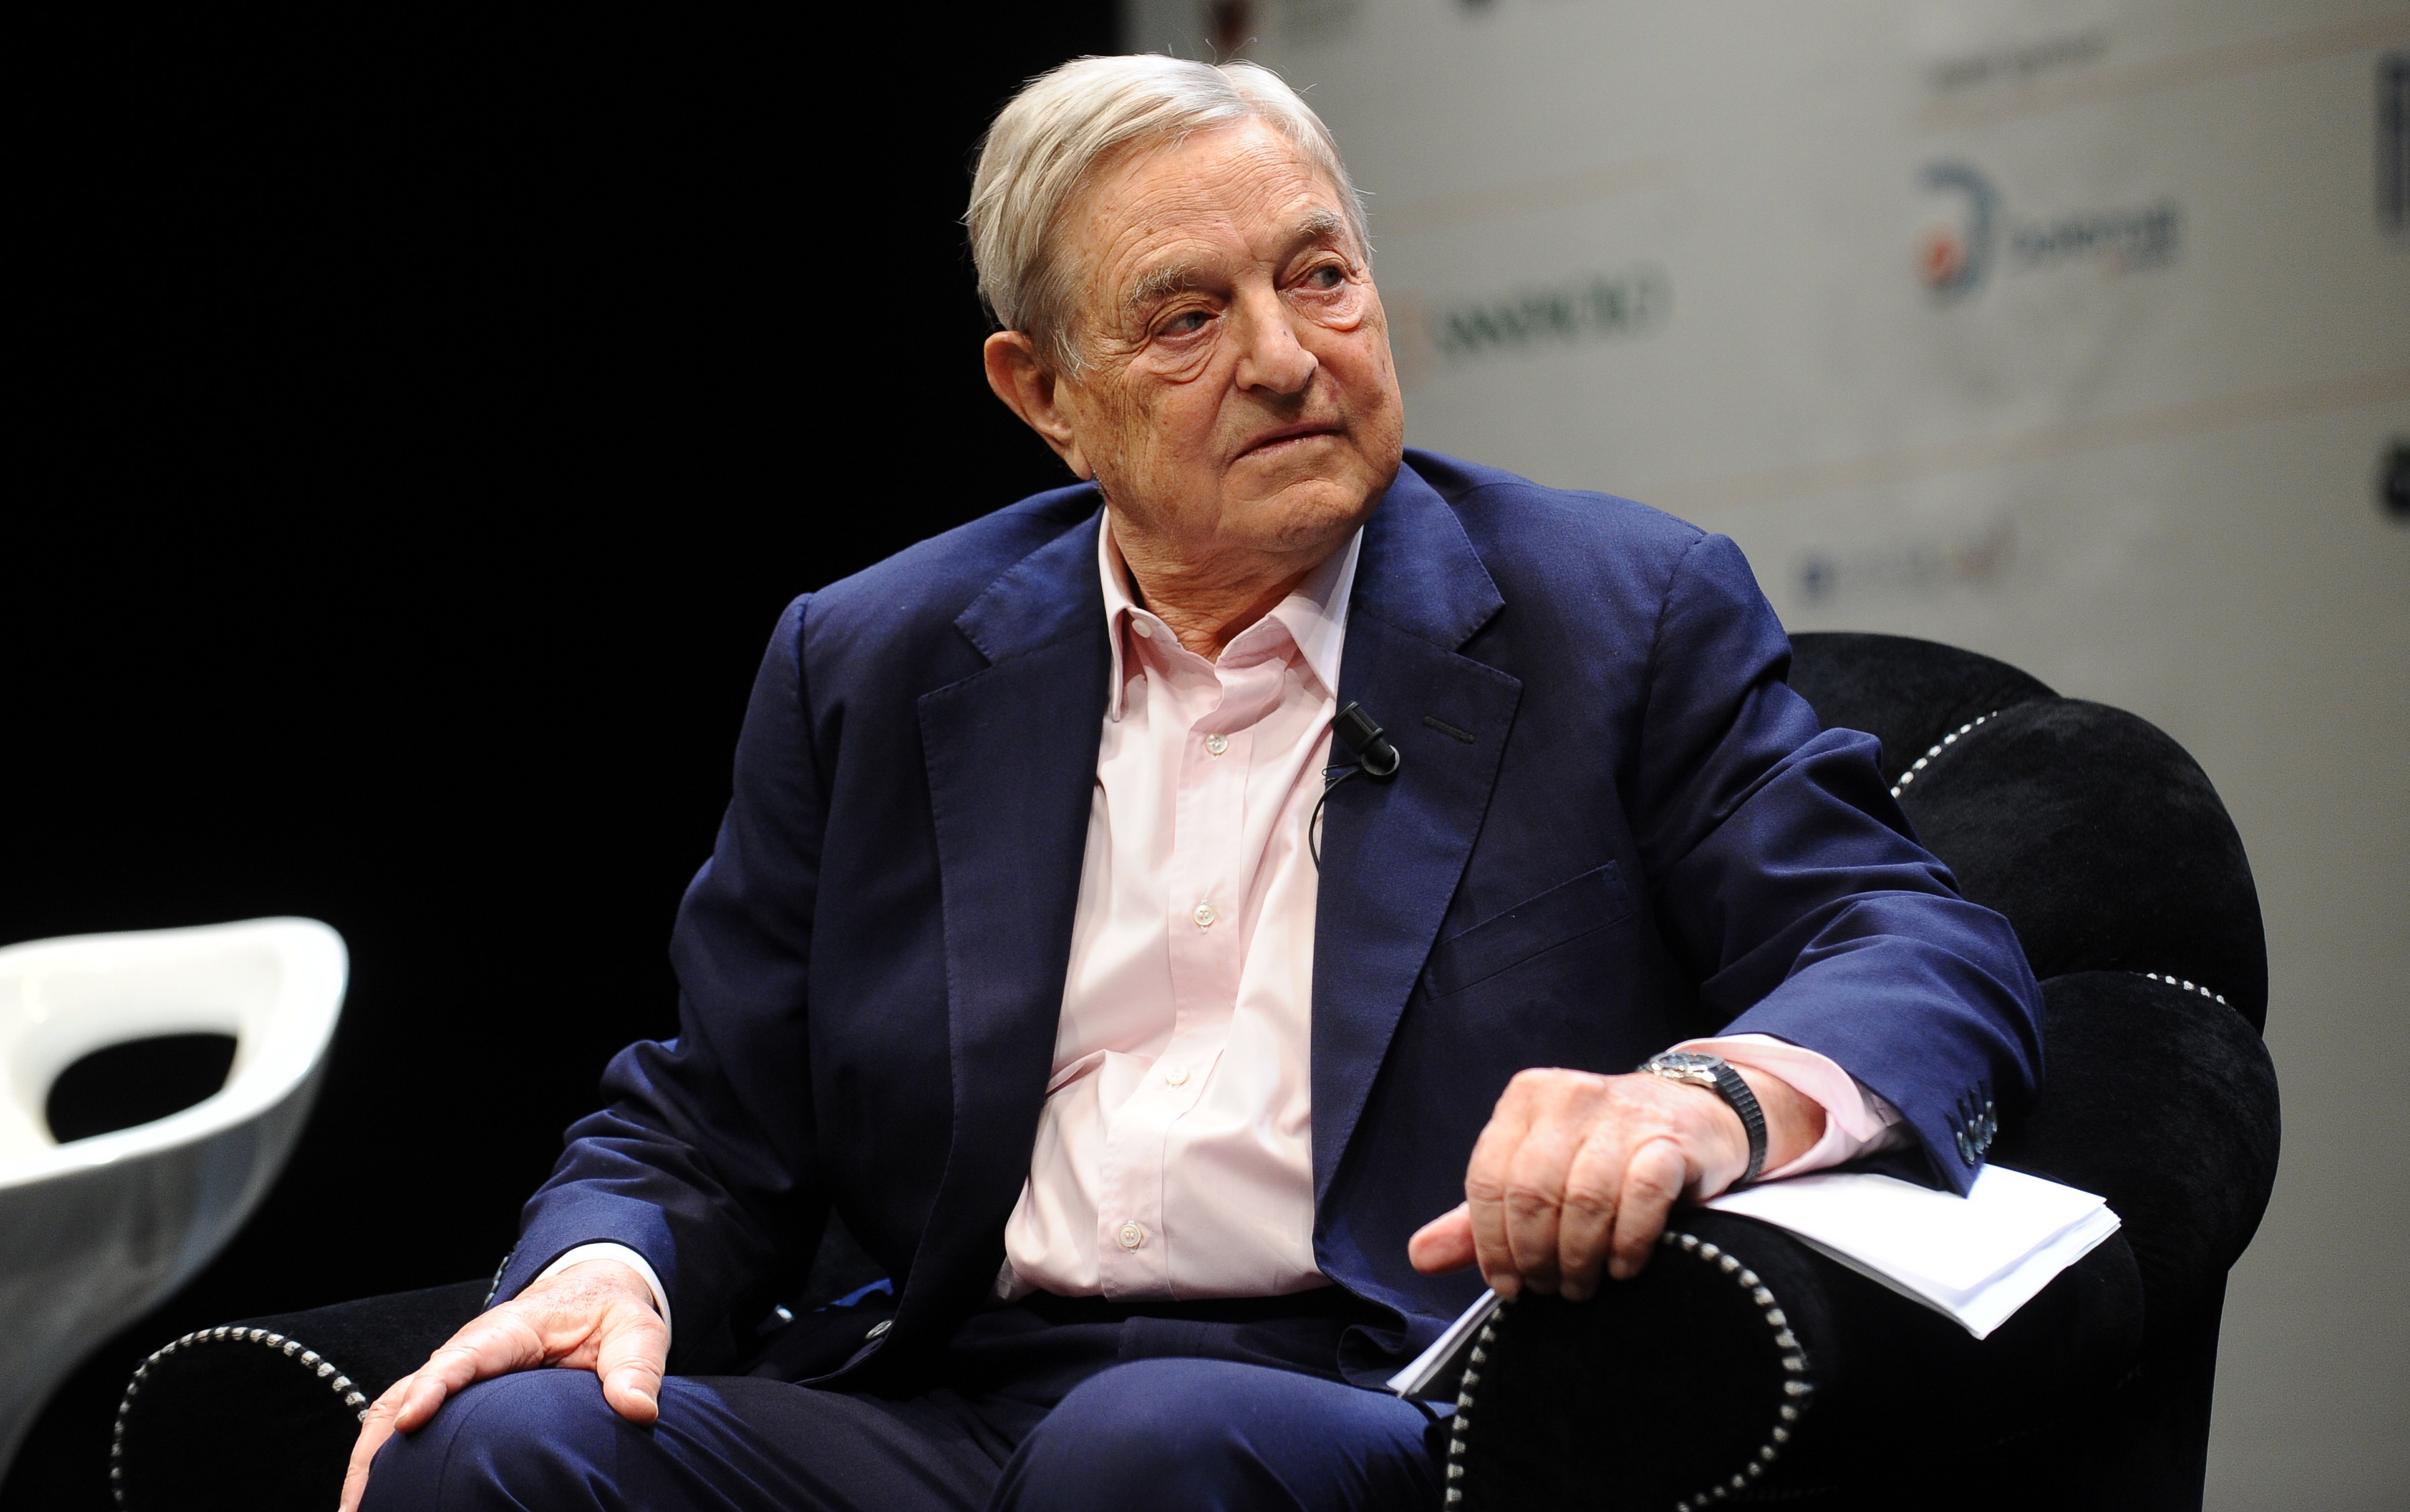 The Populist Assault on the Rule of Law, Civil Society and George Soros